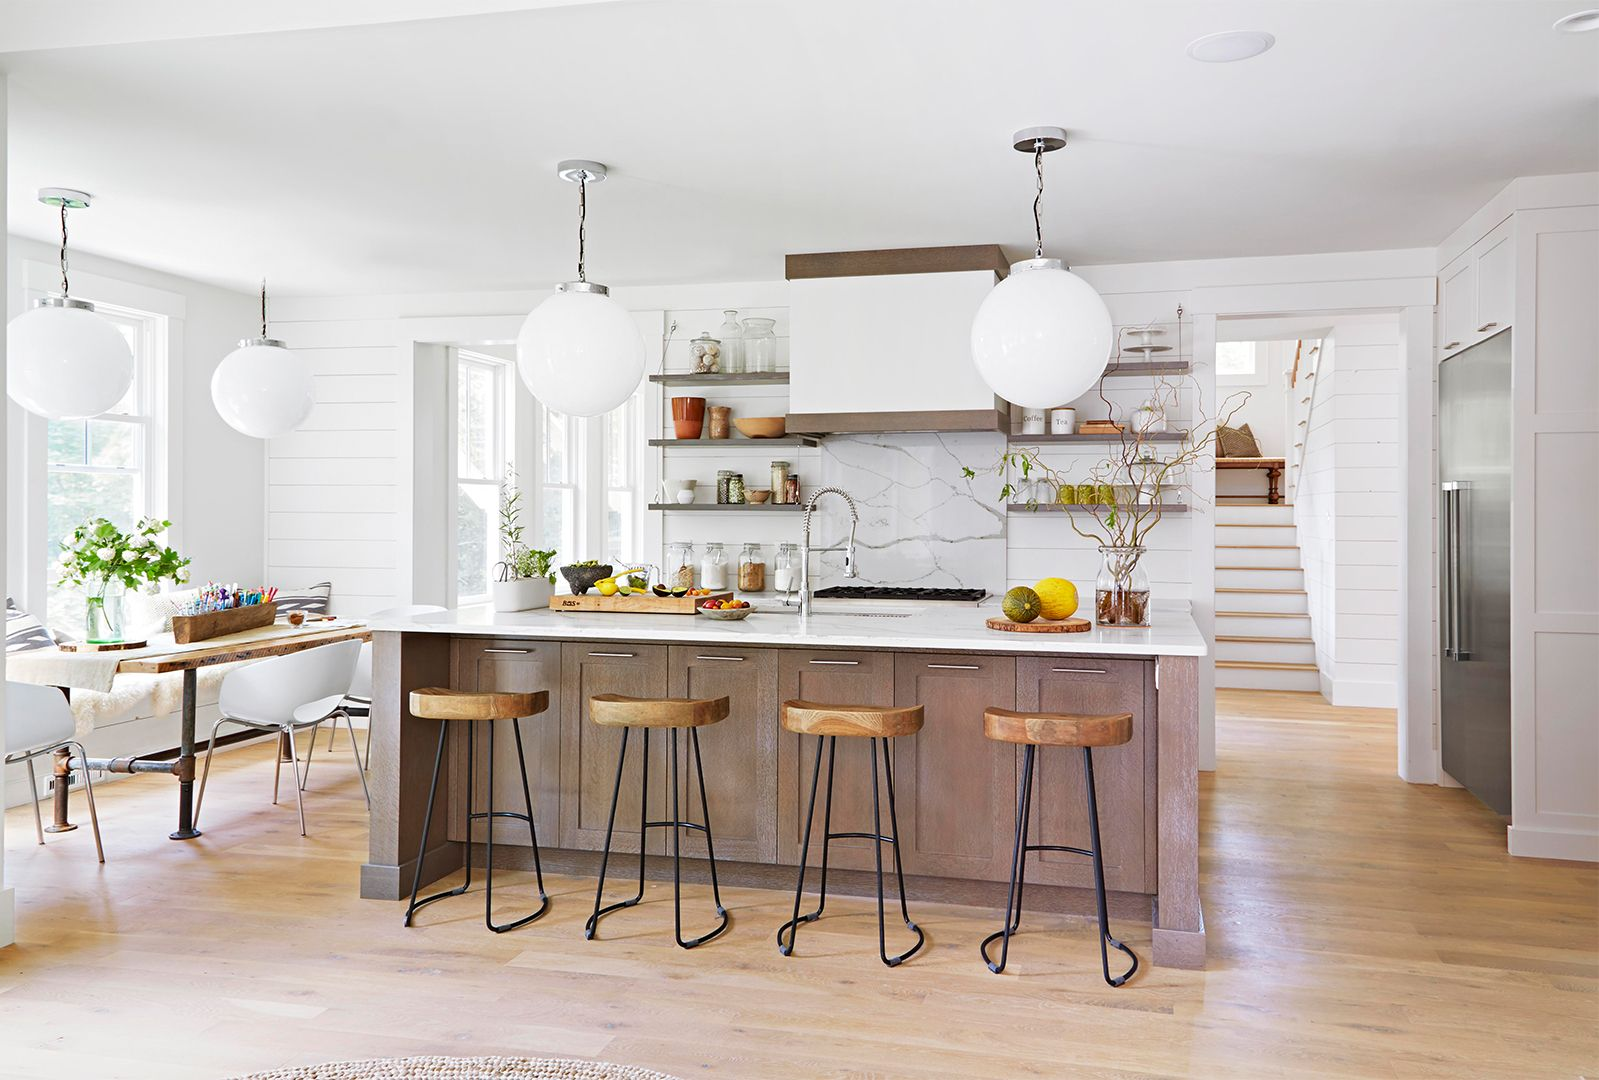 This Post Is Full Of Some Tips Other Home Stagers Won T Tell You About How To Stage Your Kitchen Sell Your House Fast Cheap Kitchen Cabinets Selling Your House